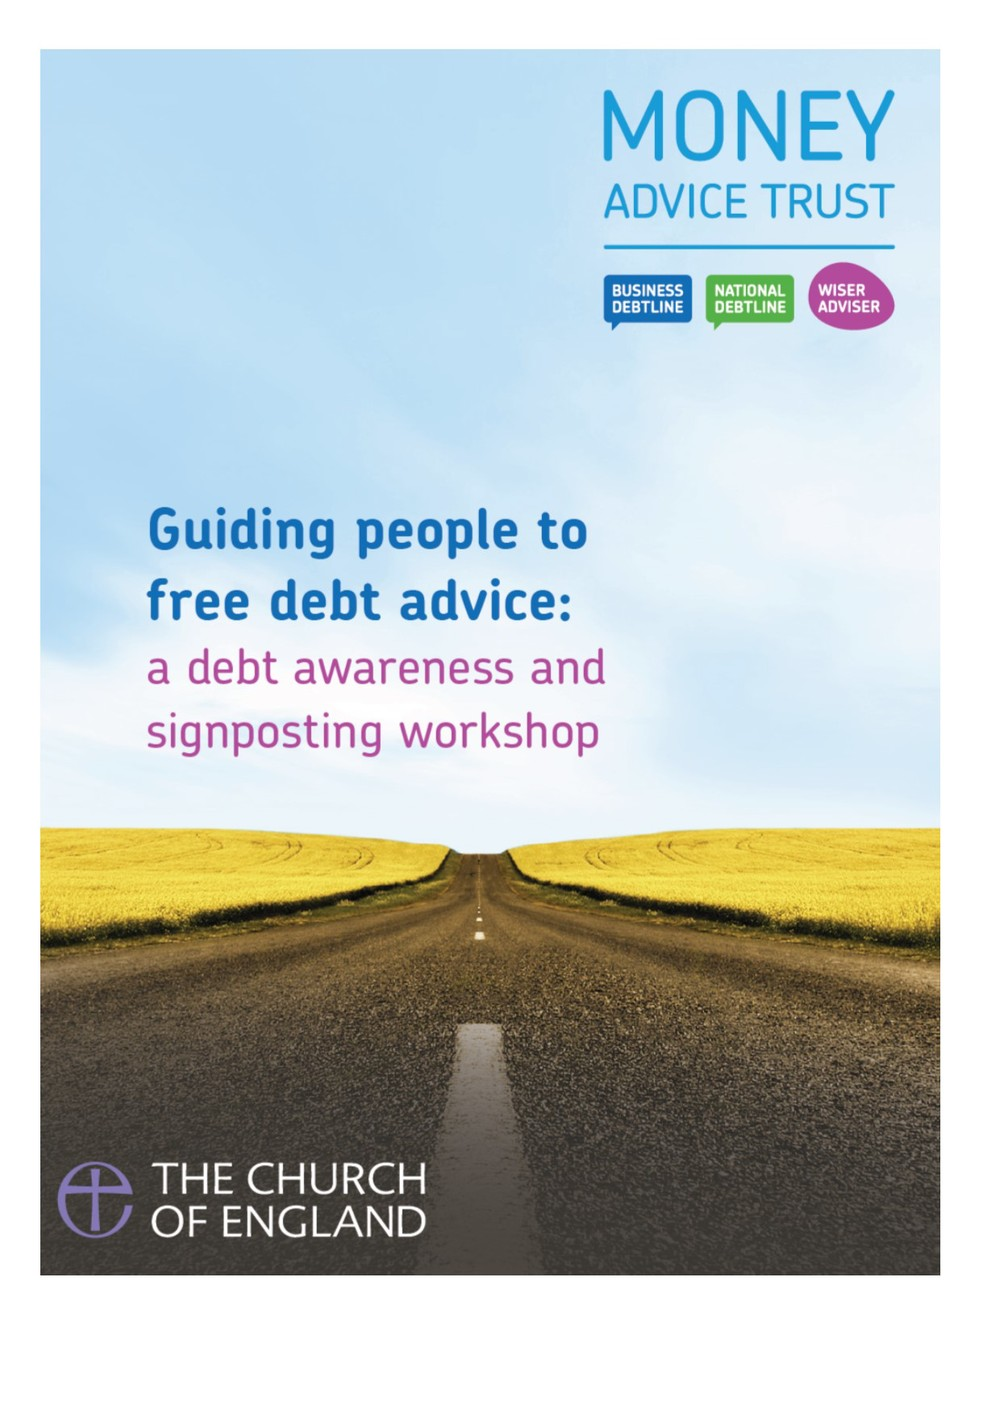 Guiding people to free debt advice: a debt awareness and signposting workshop (details below) Download or order